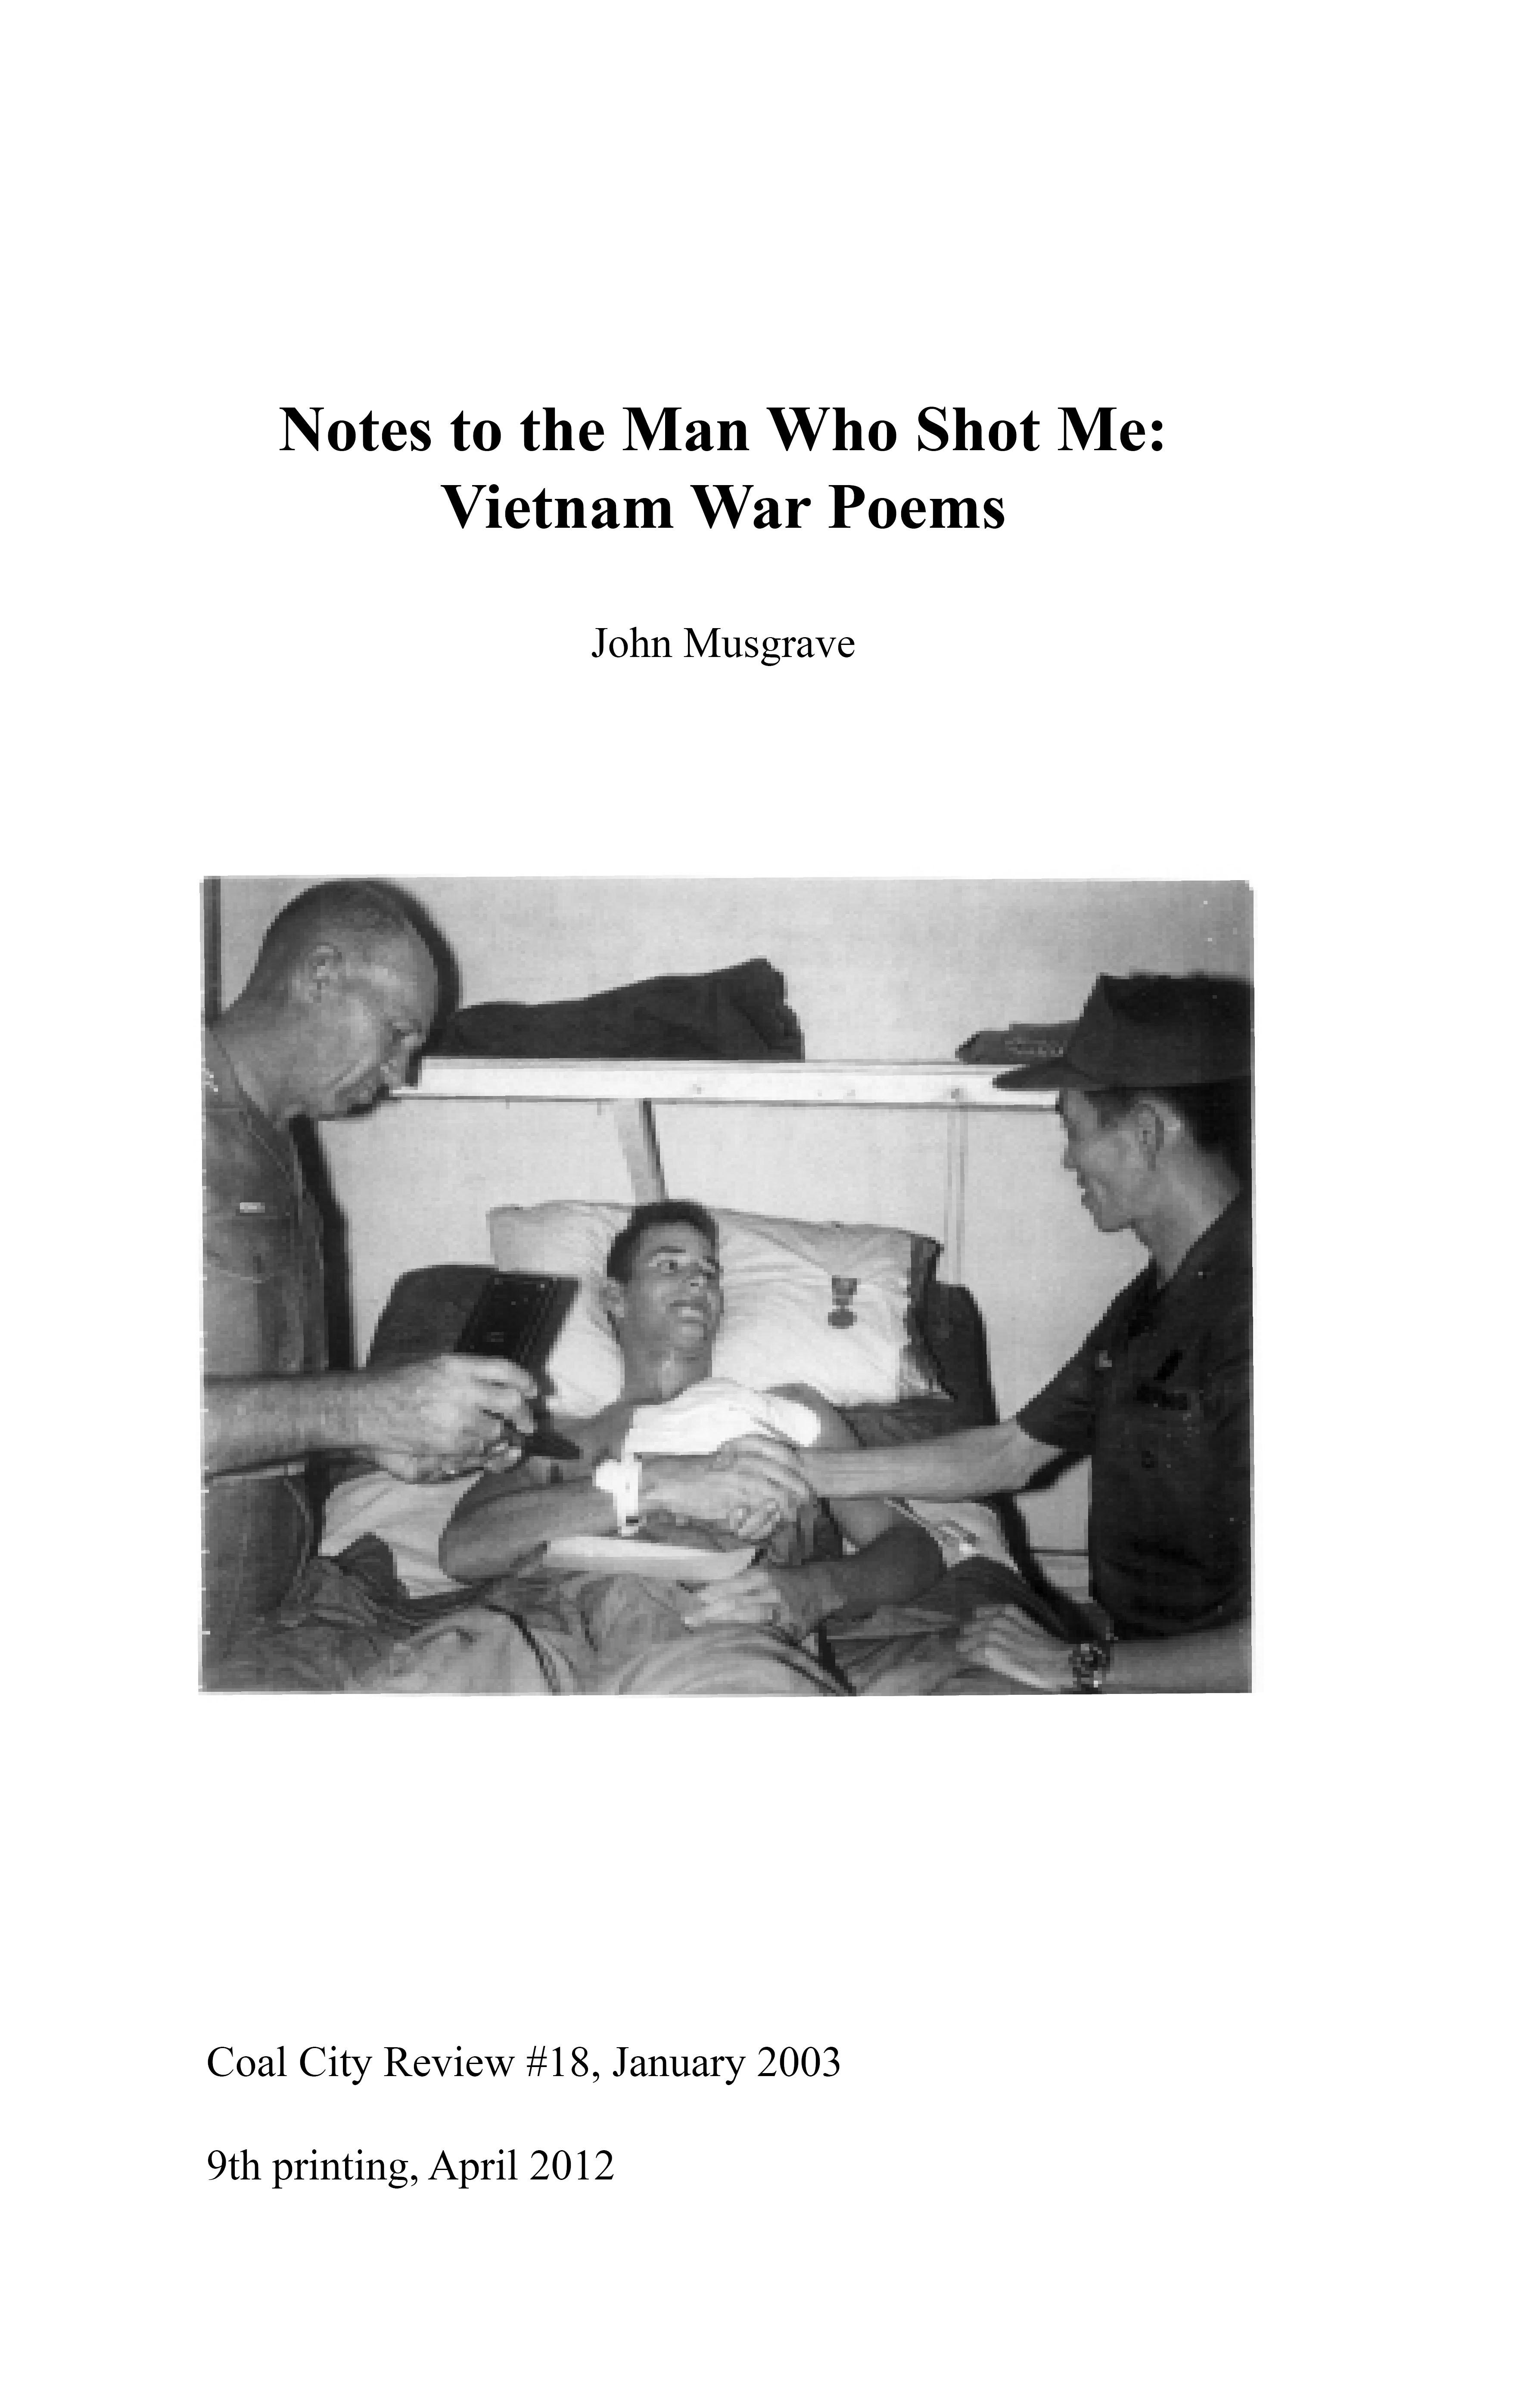 Cover art for Notes to the Man Who Shot Me: Vietnam War Poems